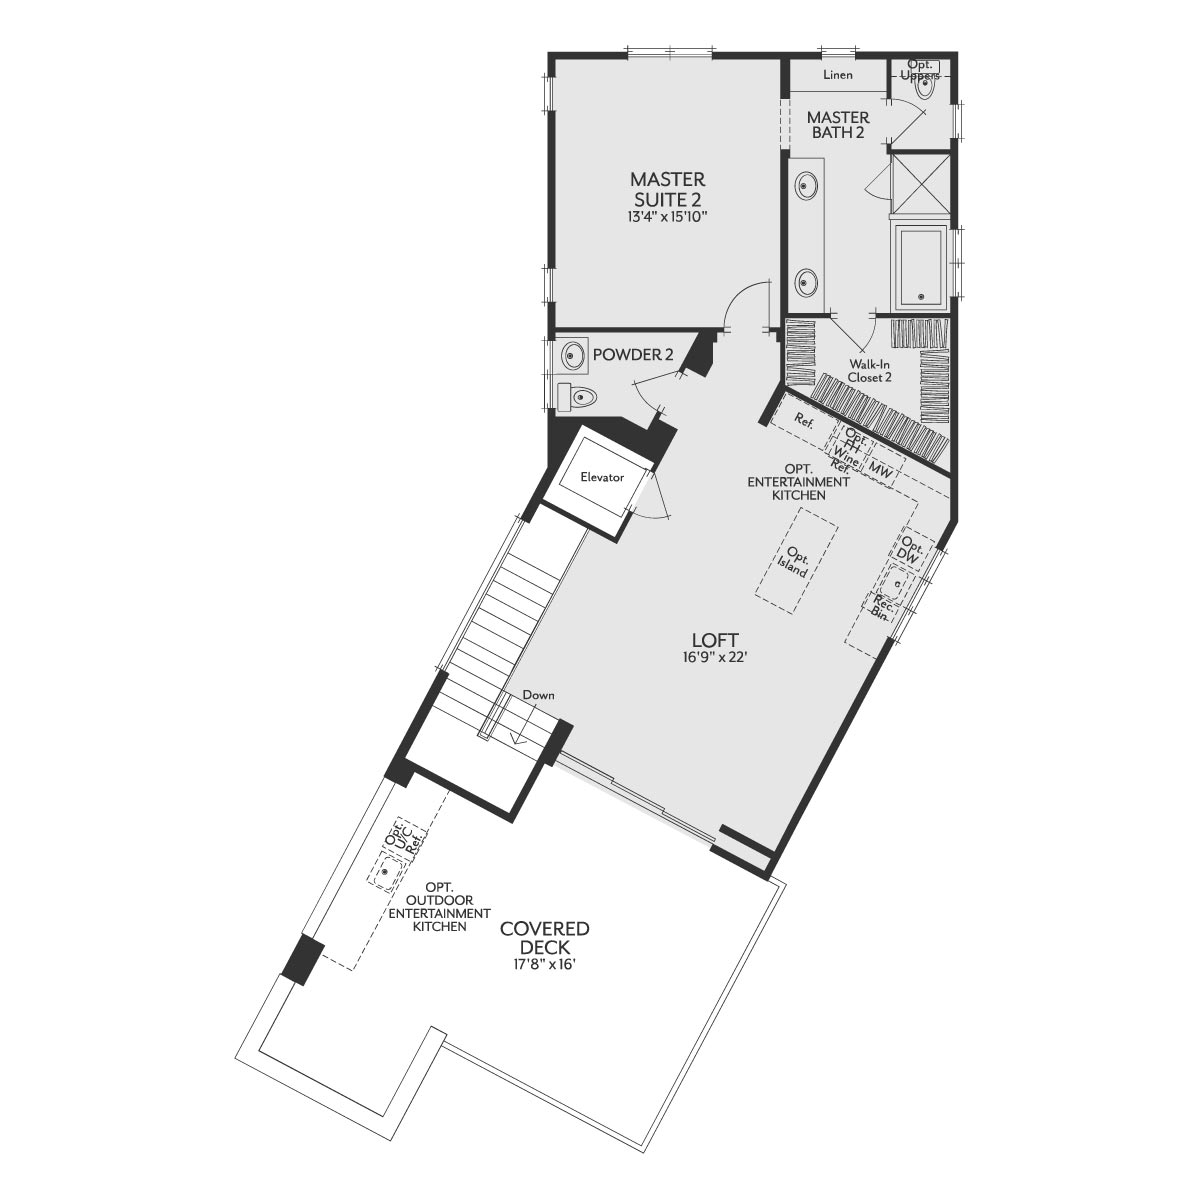 Residence 2 Floor 3 Floor Plan | The Collection at Playa Vista in Los Angeles, CA | Brookfield Residential